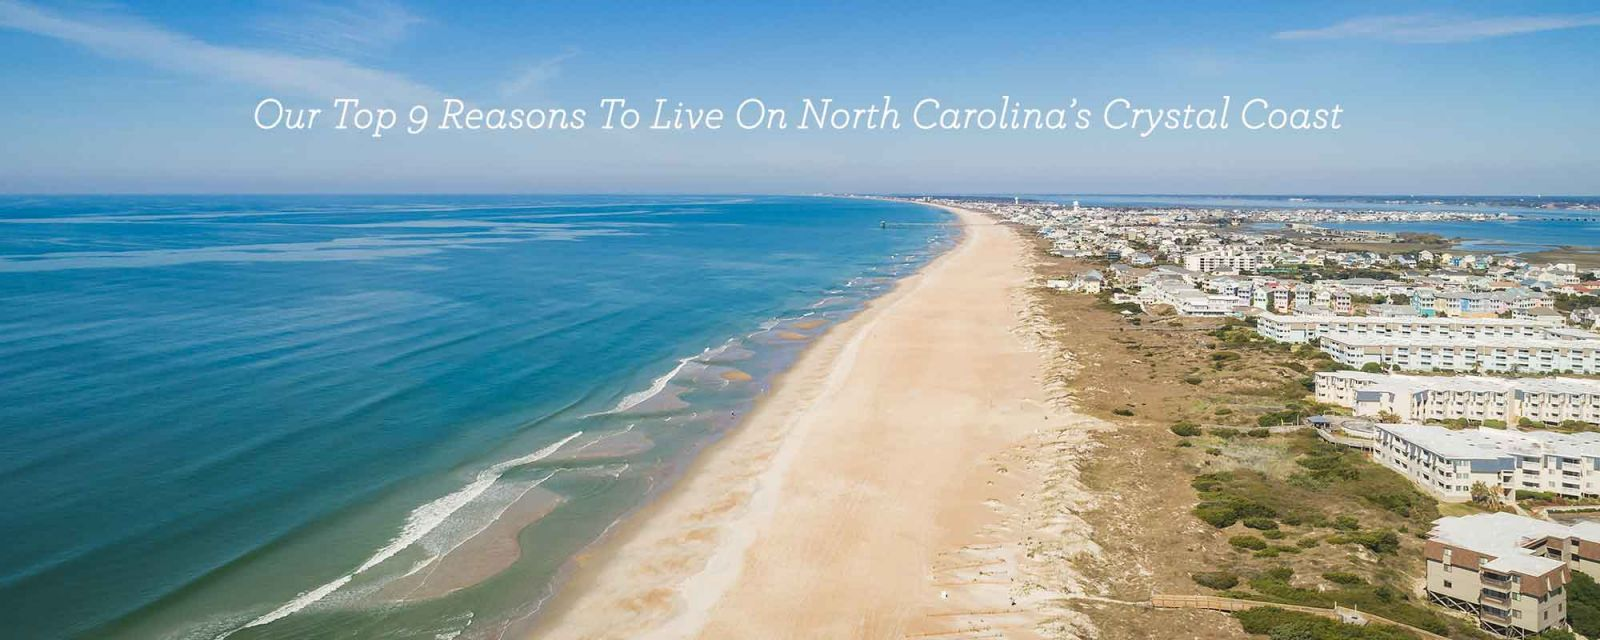 Our Top 9 Reasons To Live Along North Carolina's Crystal Coast